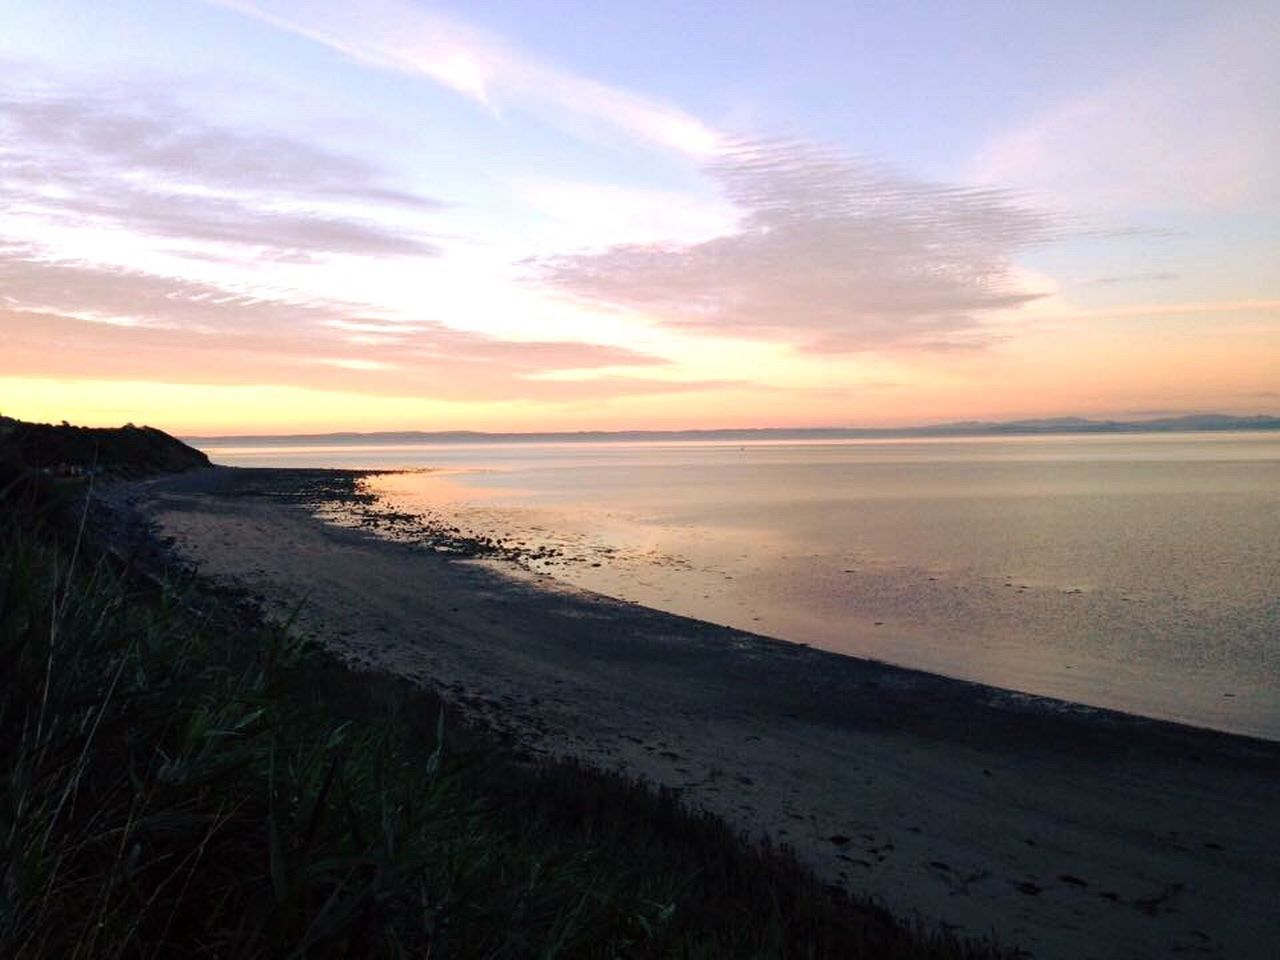 Sea Beach Horizon Over Water Sand Sunset Beauty In Nature Sky Nature Scenics Tranquil Scene Tranquility Shore Outdoors Water Cloud - Sky Idyllic No People Coastline Marram Grass Day Scotland Drummore